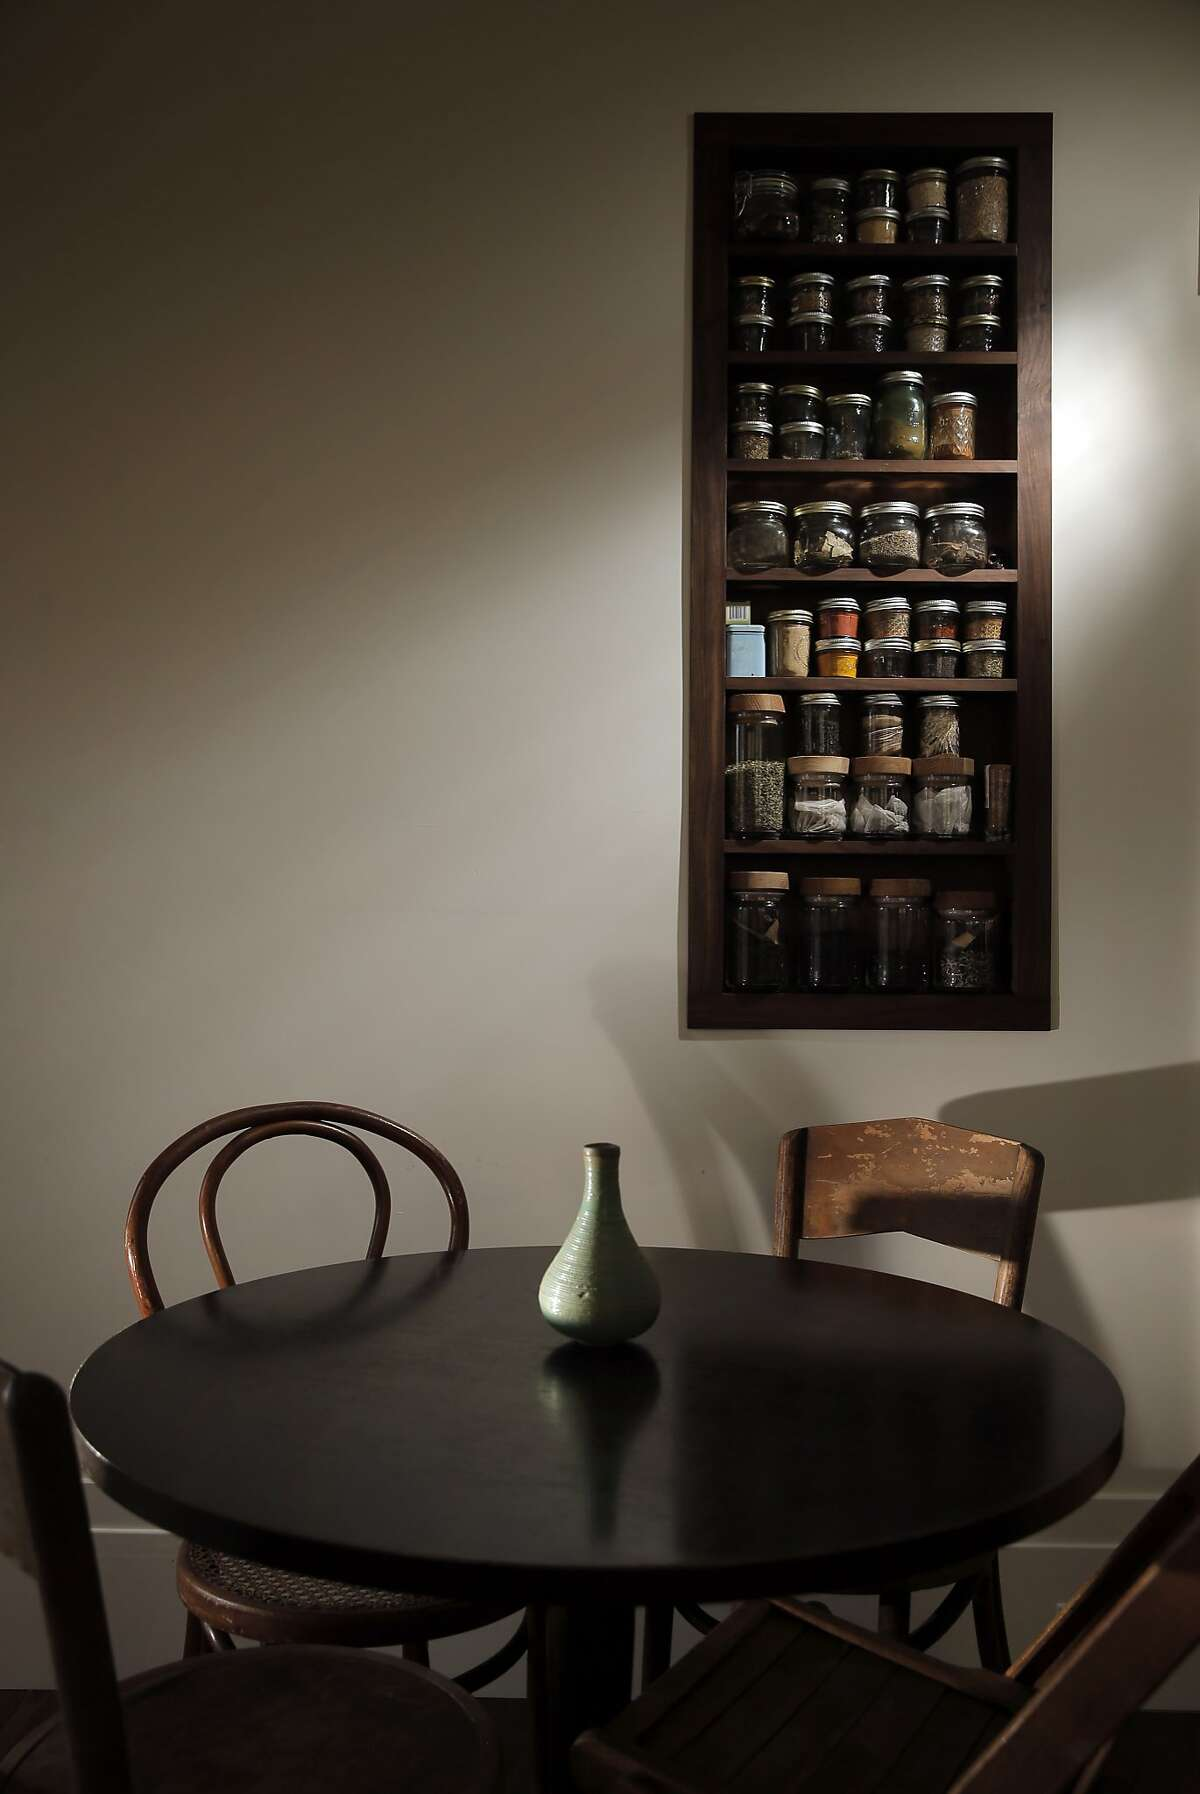 The breakfast nook and spice rack in Dona Savitsky's home which she recently remodeled in Oakland , Calif., on Monday, July 20, 2015.